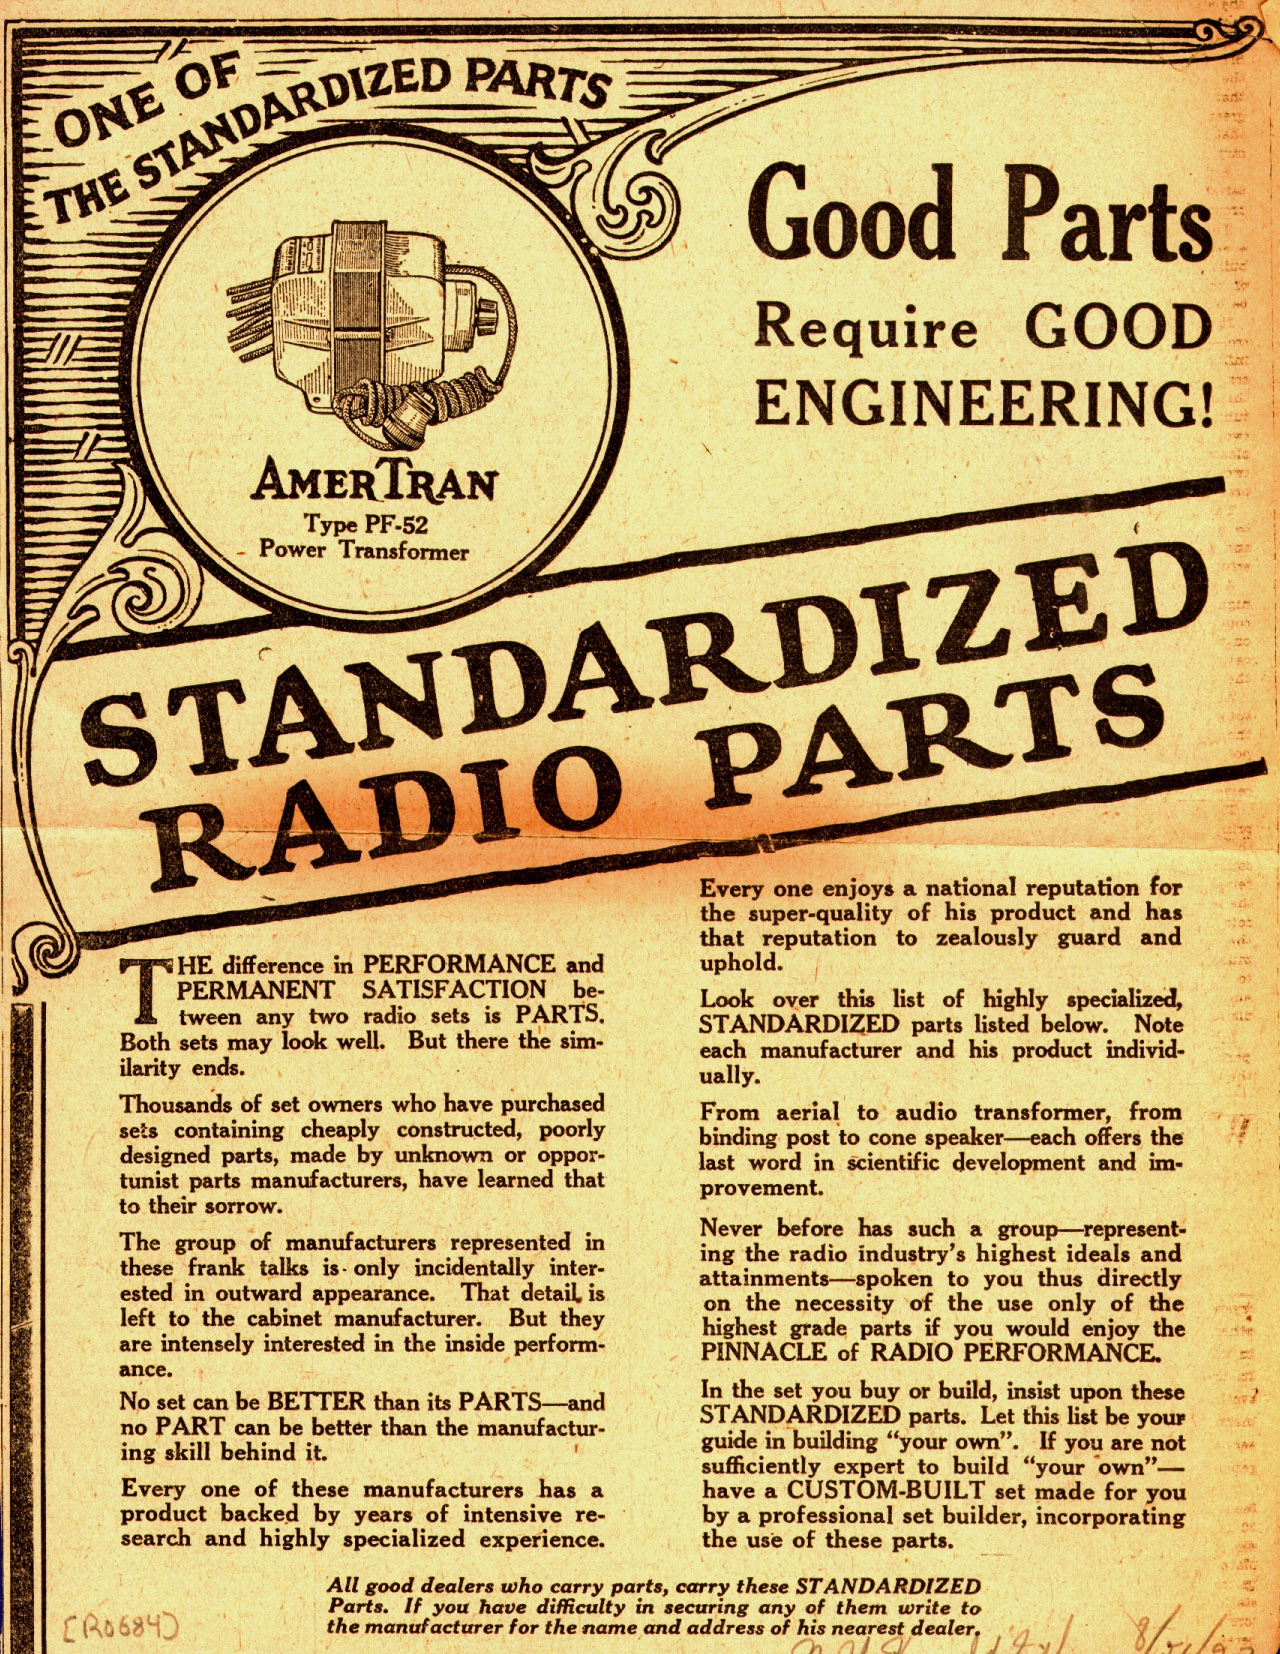 Good_Parts_Require_Good_Engineering_Standardized_Radio_Parts